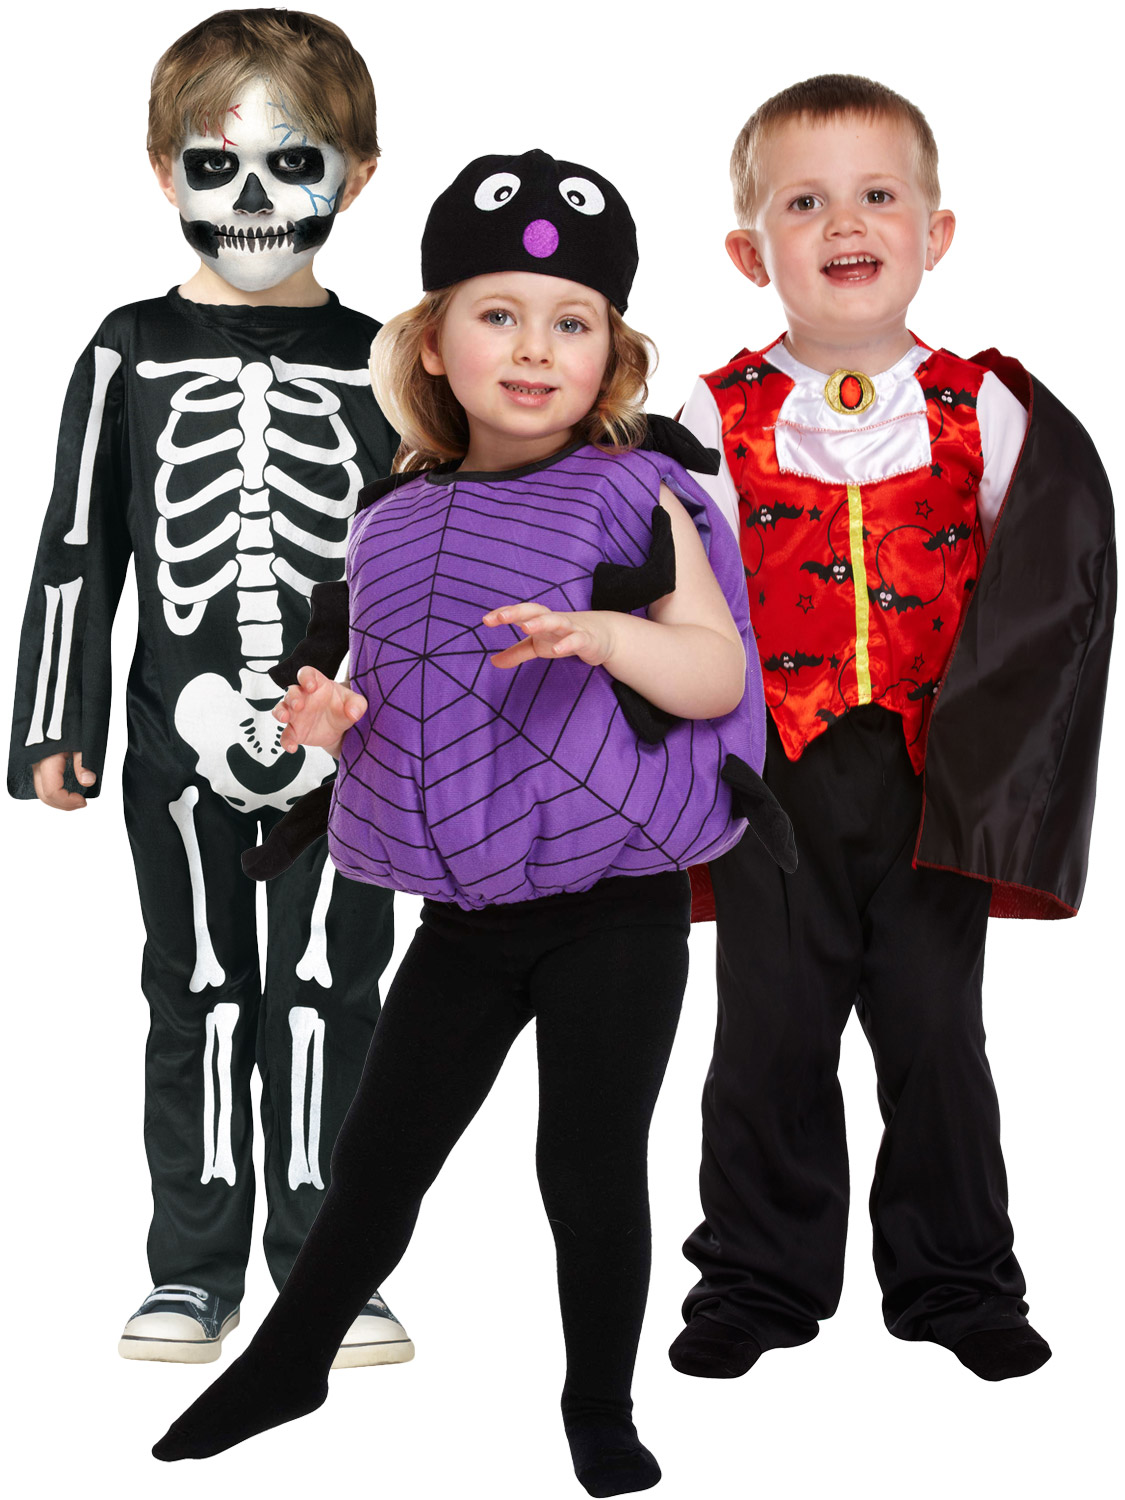 Details about Age 2,3 Toddler Halloween Costume Vampire Skeleton Fancy  Dress Kids Boys Girls